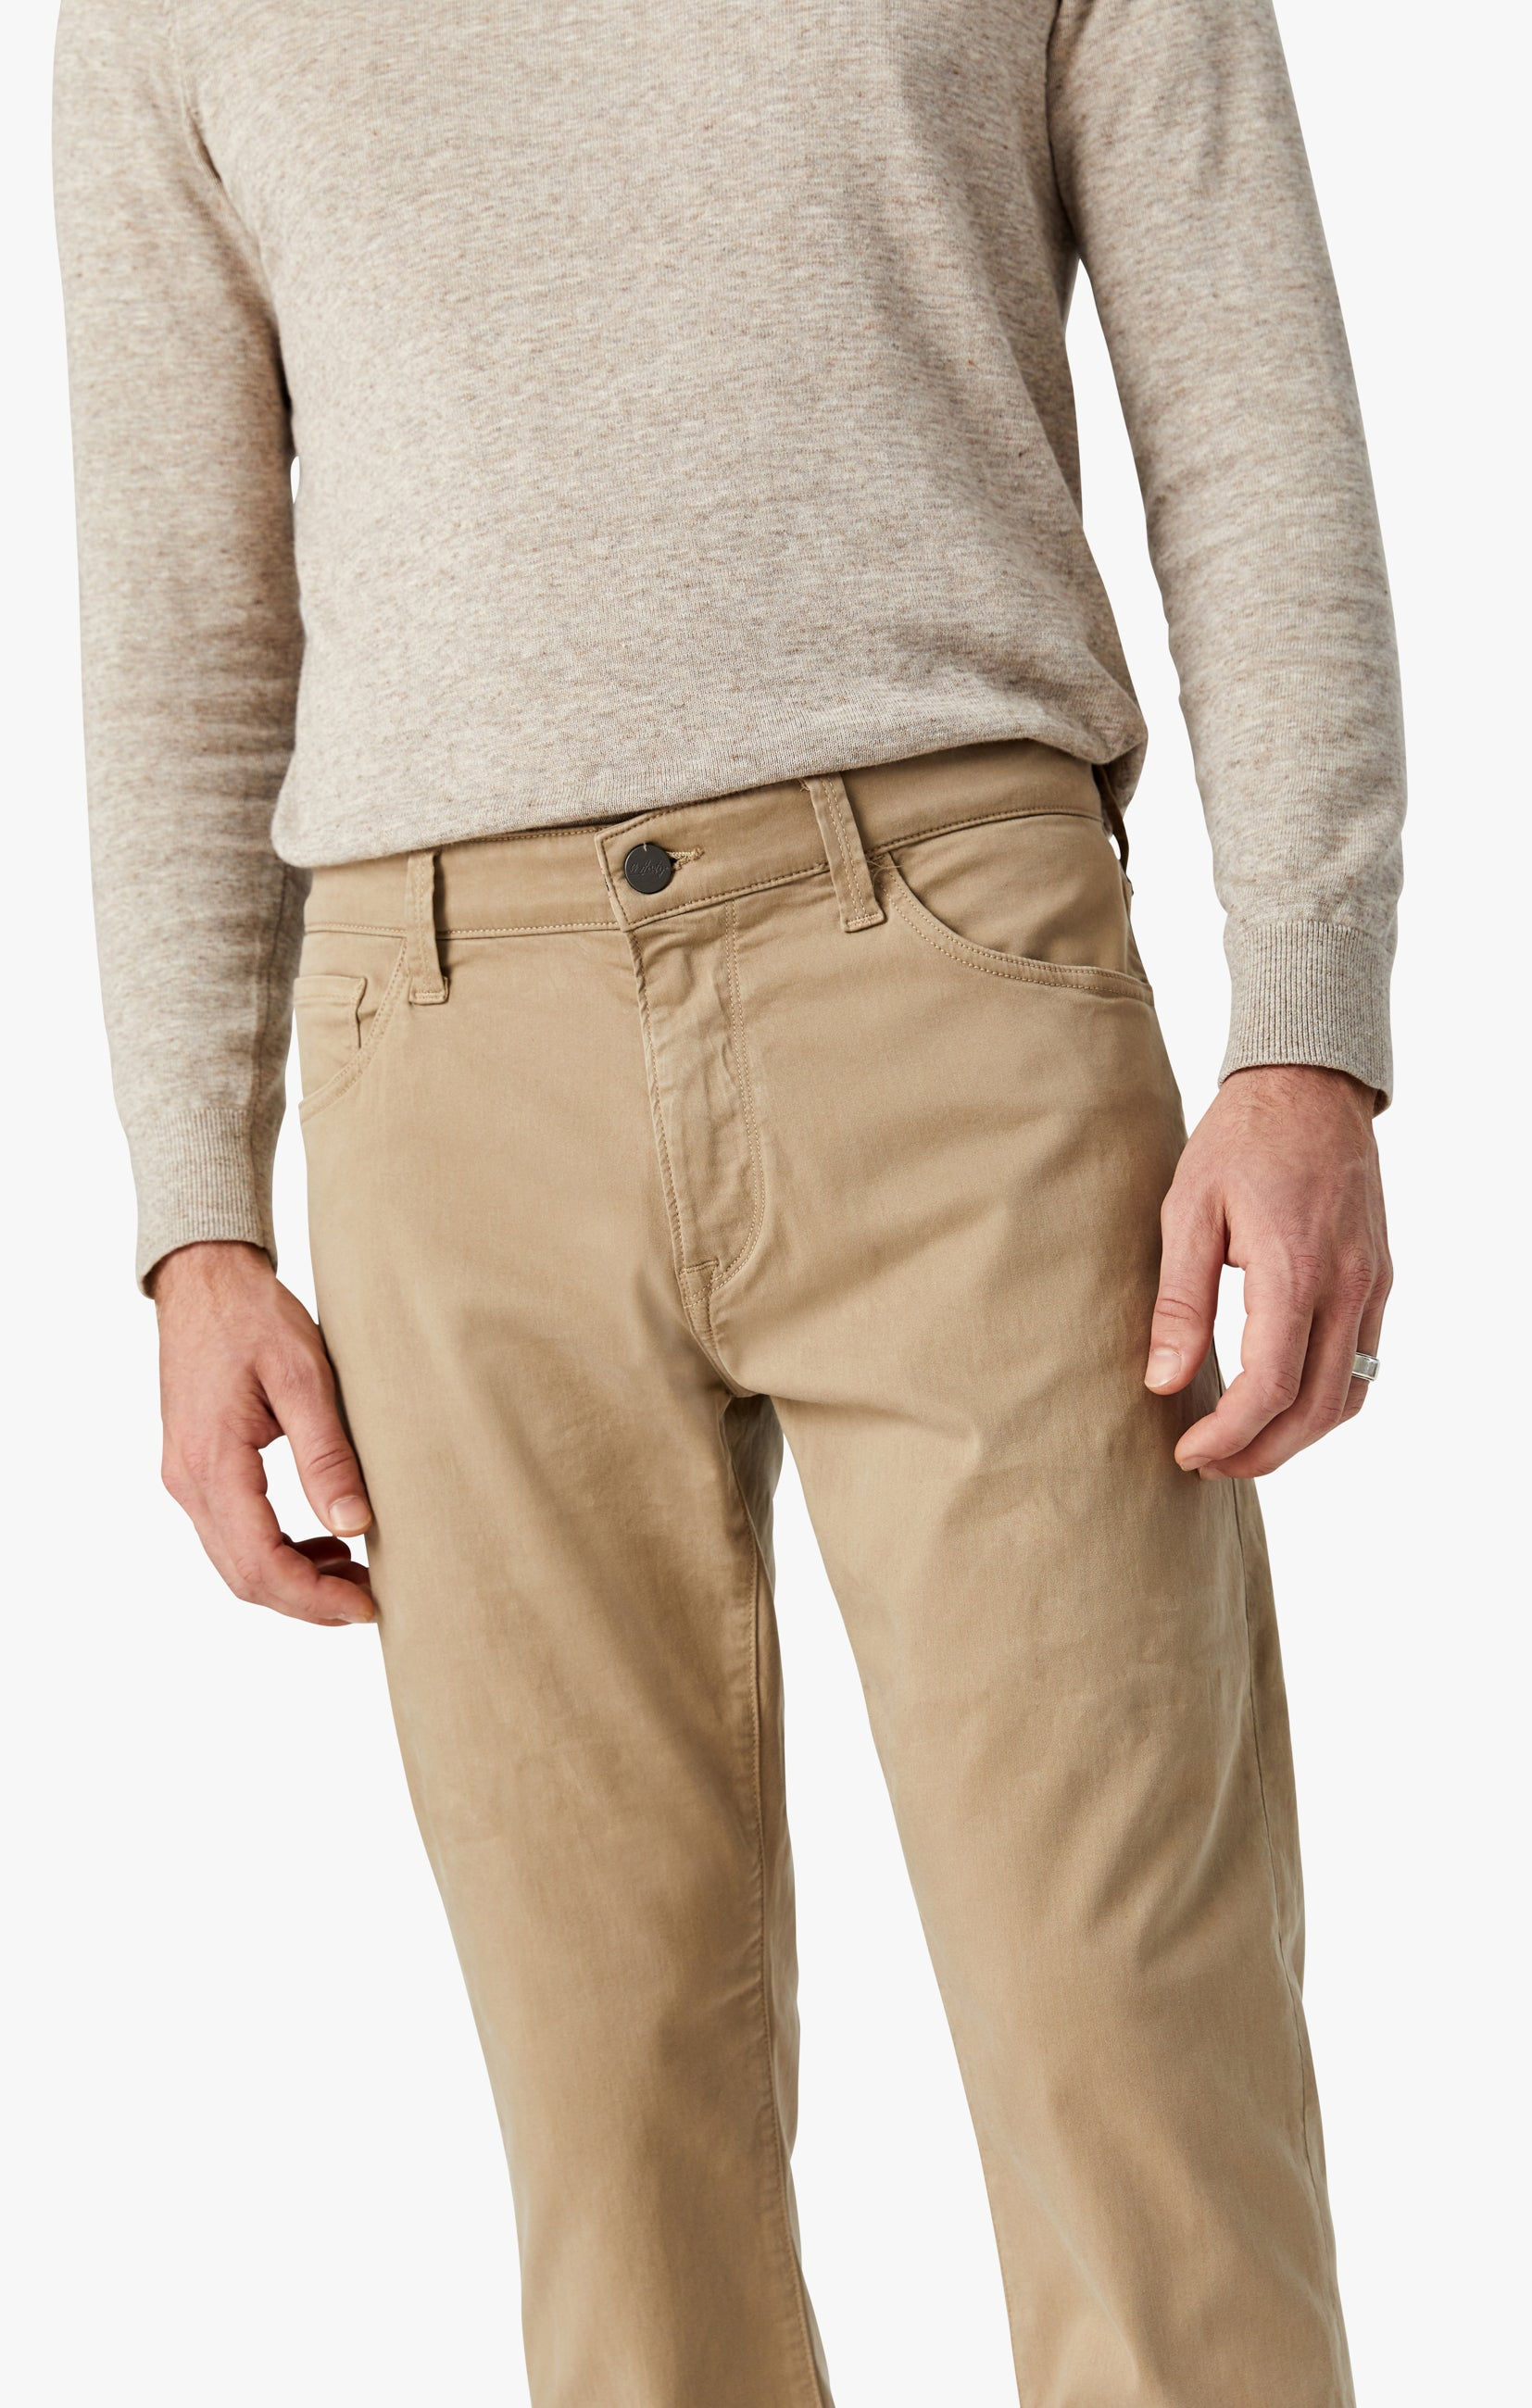 Courage Straight Leg Pants in Sand Twill Image 7